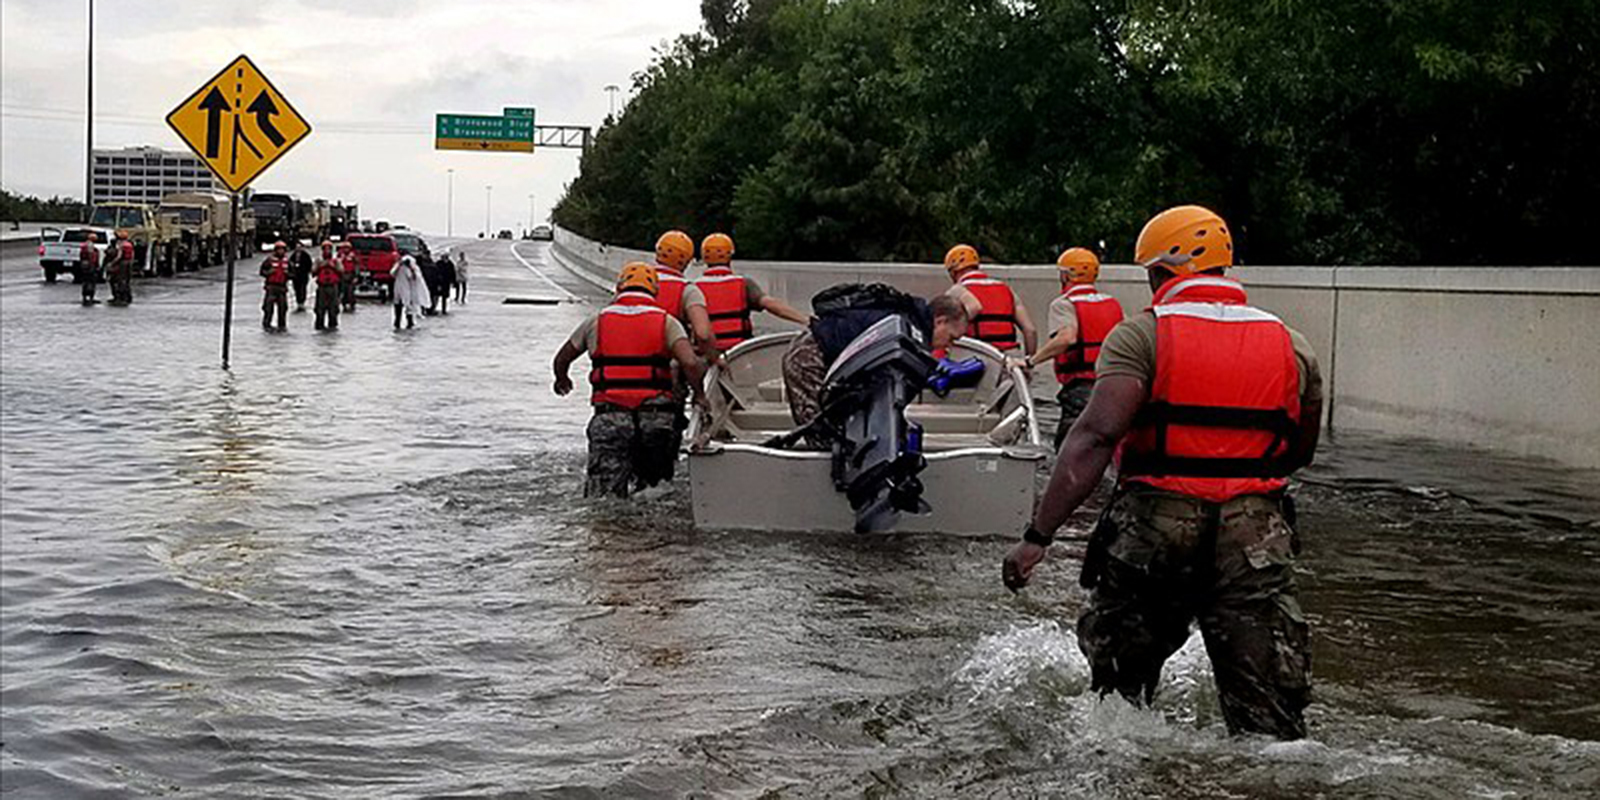 Barnabas Foundation Members Provide Critical Relief Following Hurricanes